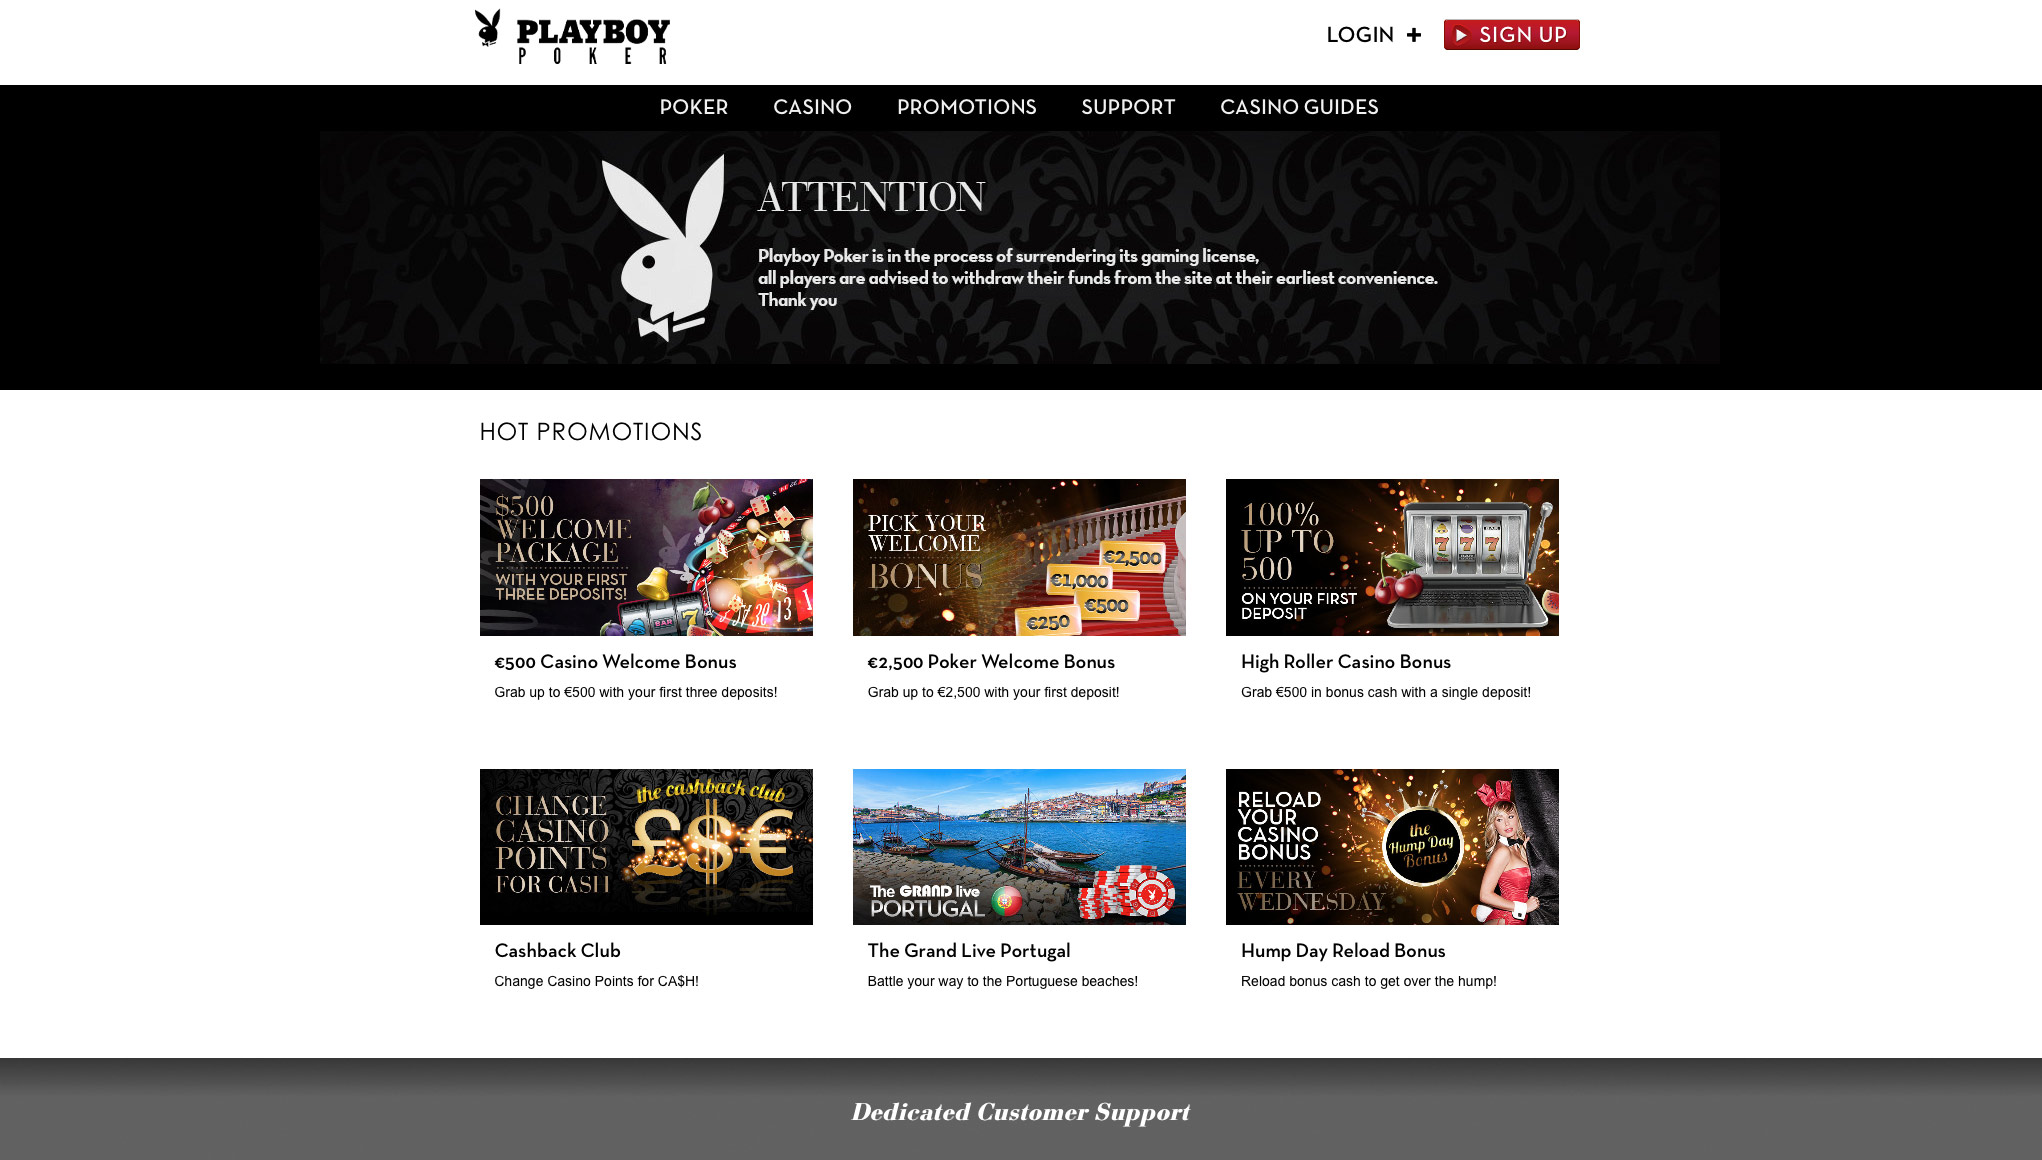 Playboy Poker Review